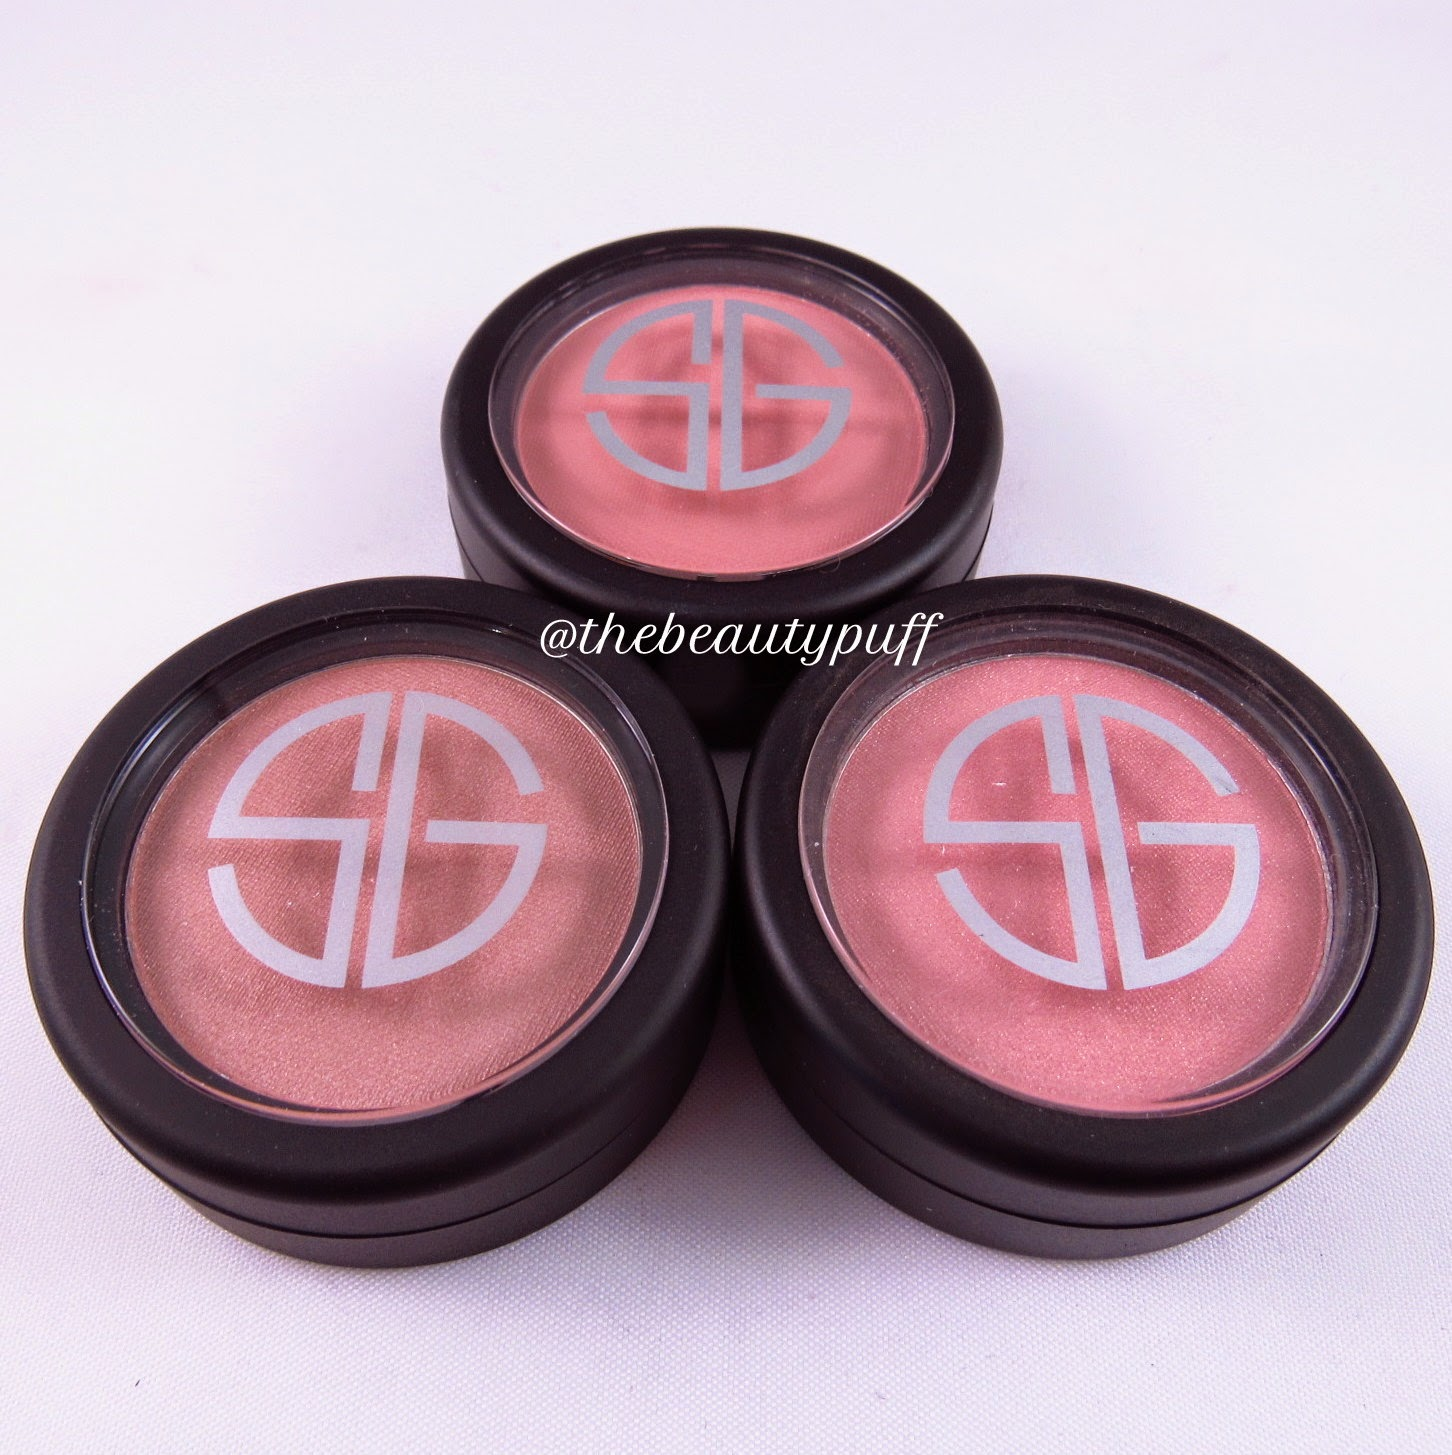 studio gear cosmetics blushes - the beauty puff